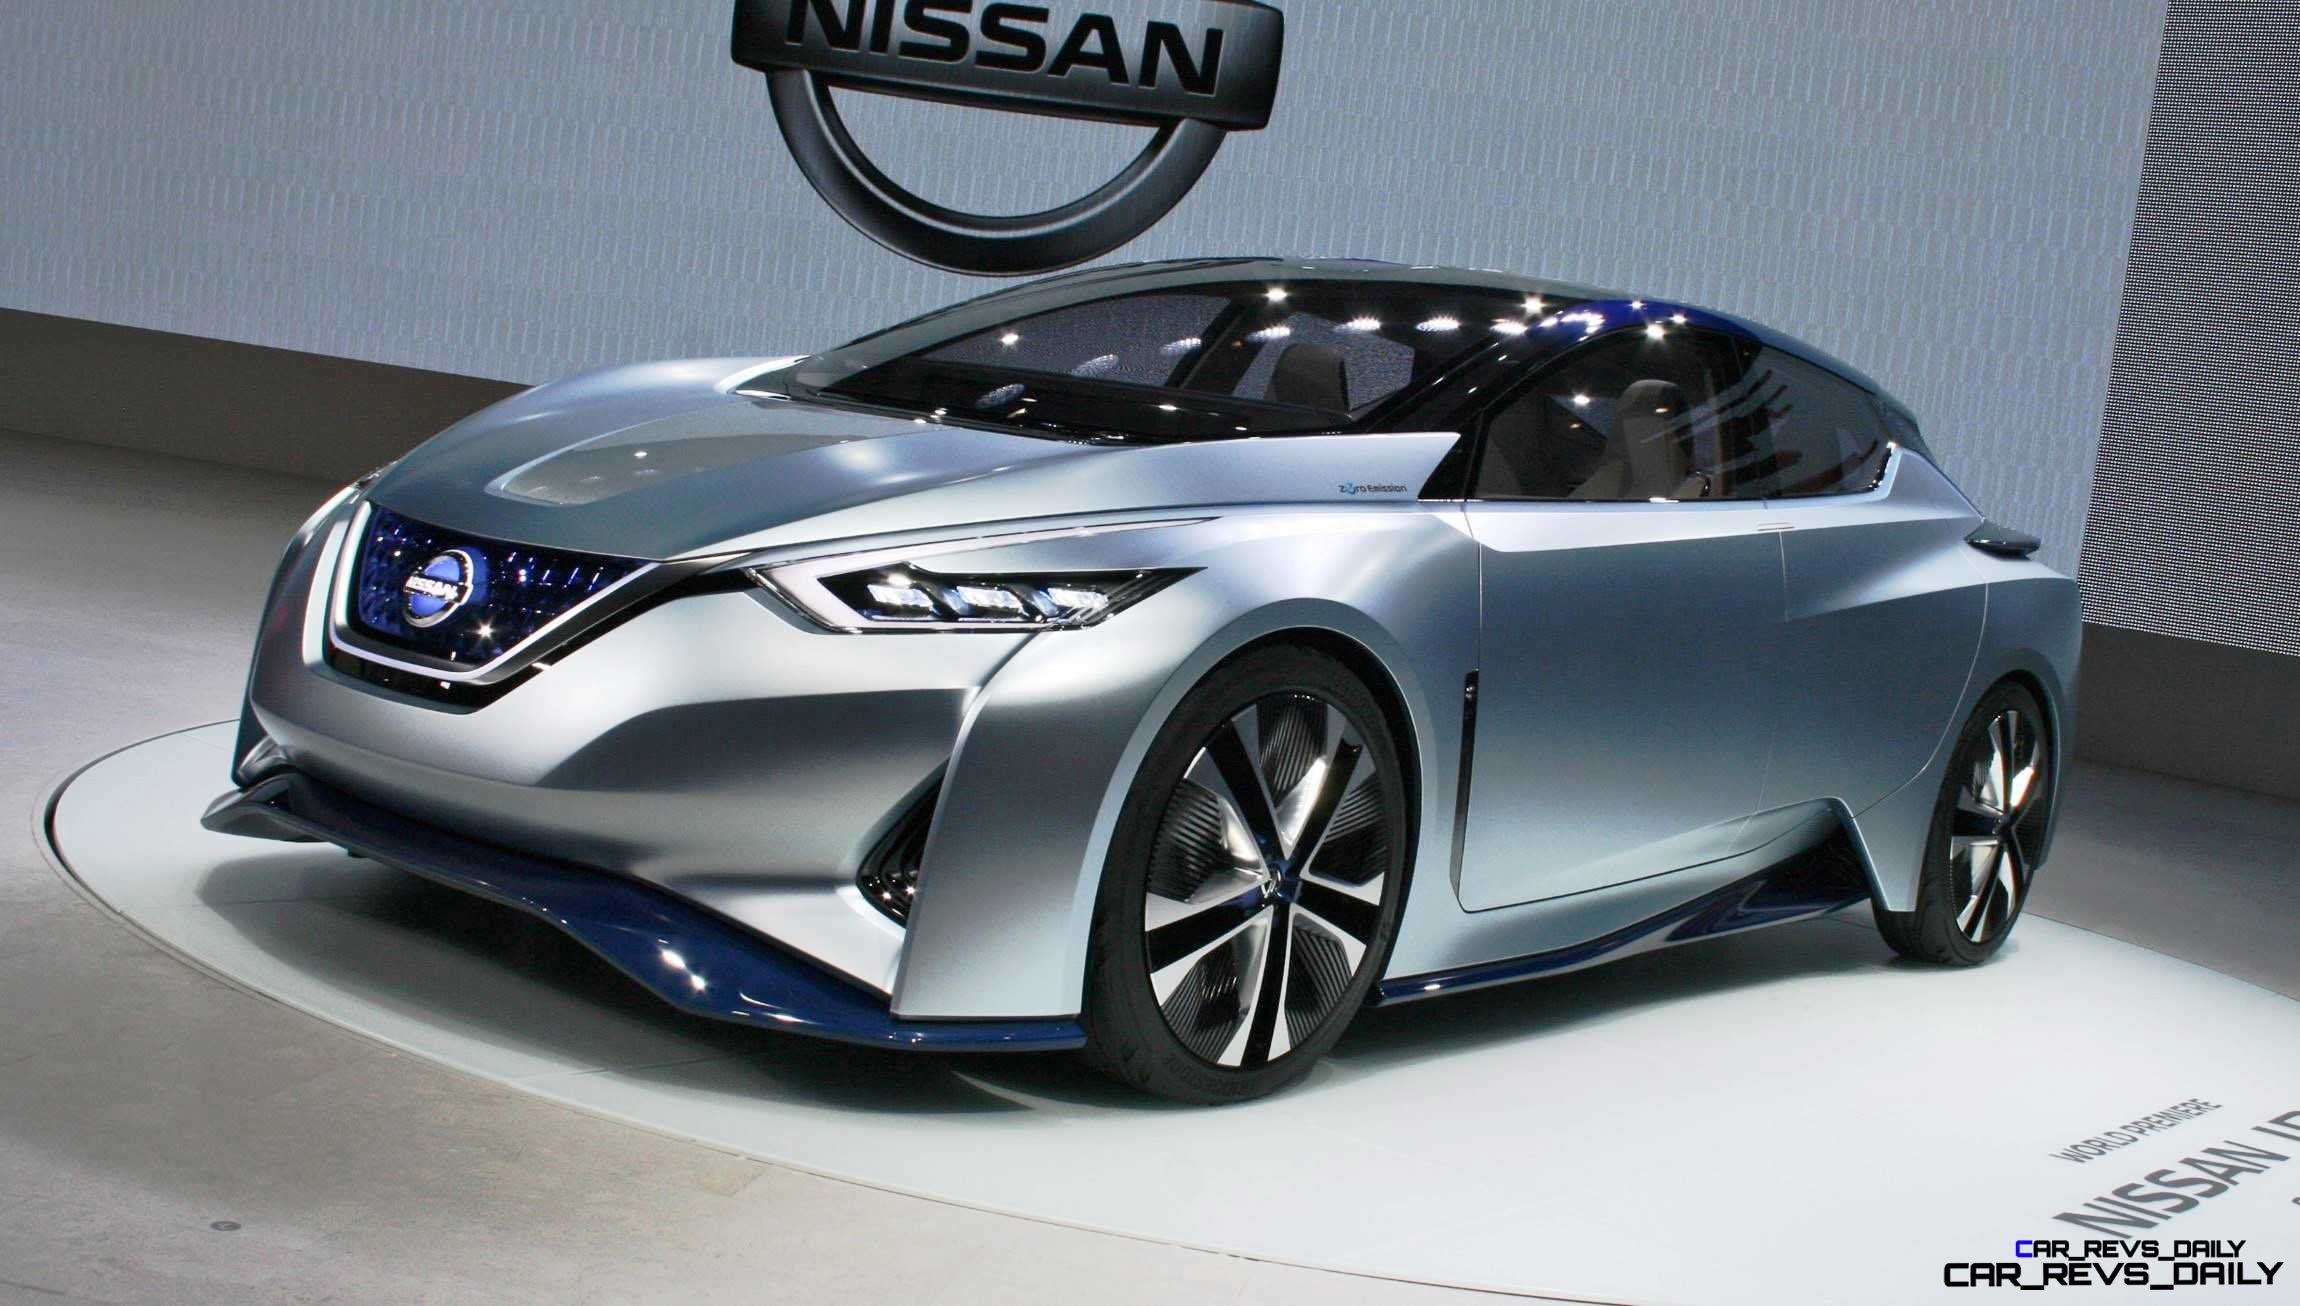 2015 Nissan IDS Concept is Autopilot EV with Sharply Stylish Aero